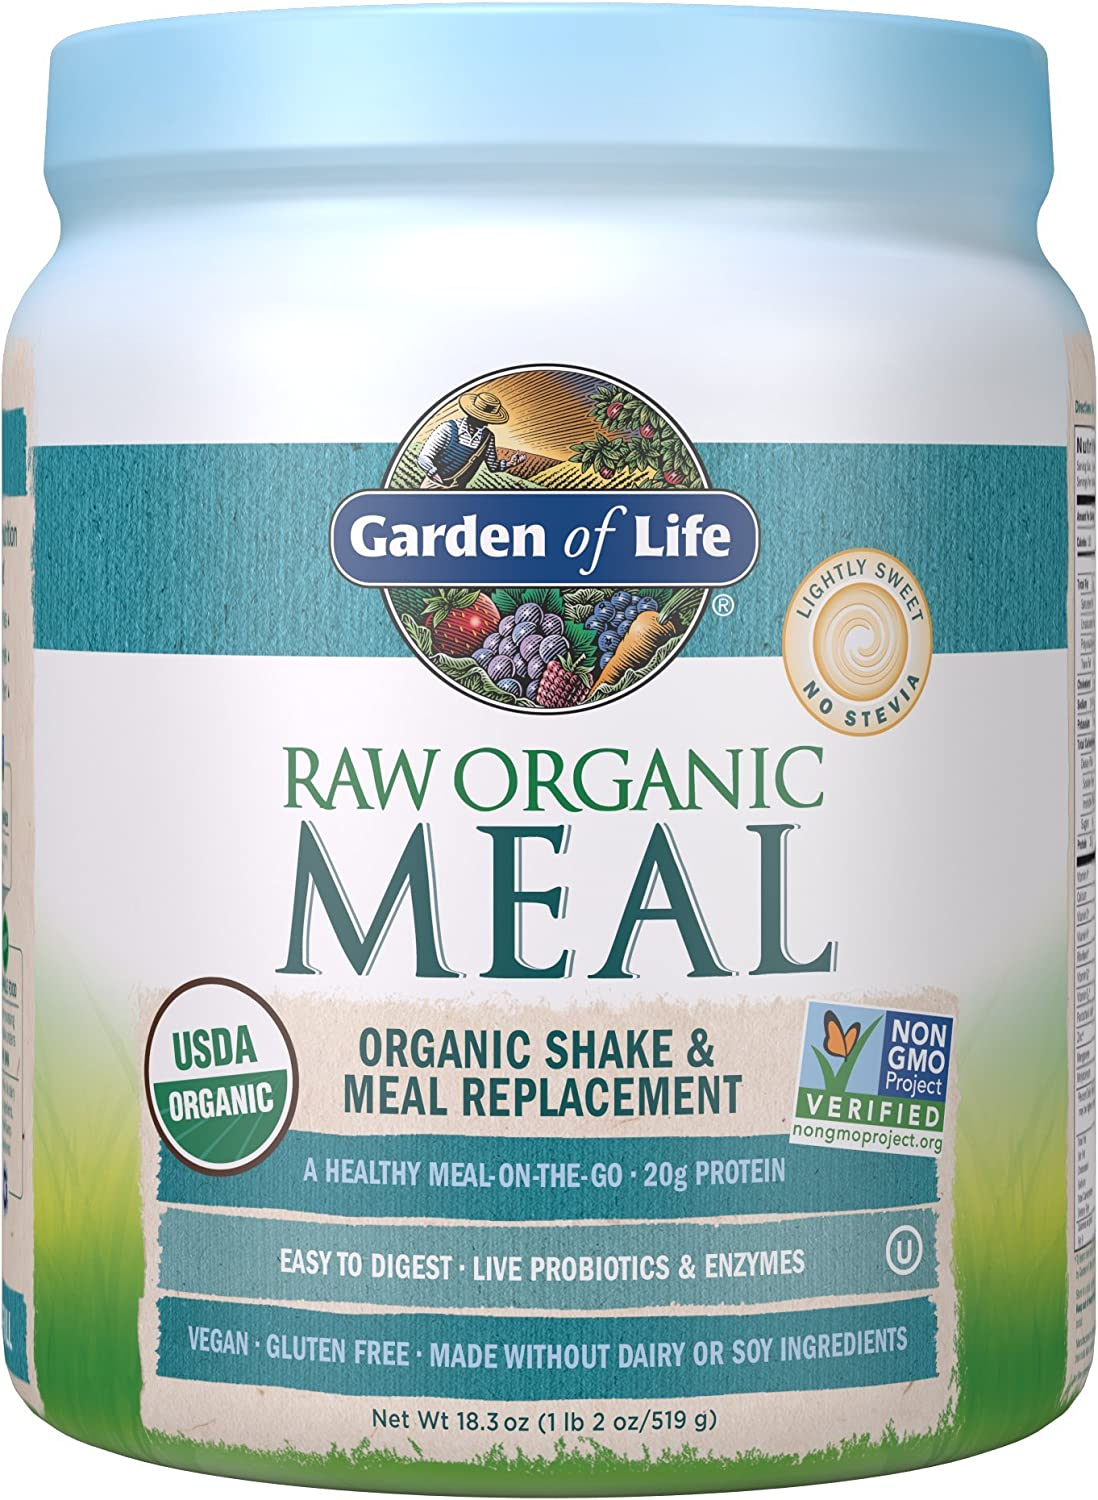 Garden of Life Raw Organic Meal Replacement Powder - Lightly Sweet, 14 Servings, 20g Plant Based Protein Powder, Superfoods, Greens, Vitamins Minerals & Probiotics, All-in-One Meal Replacement Shake: Health & Personal Care